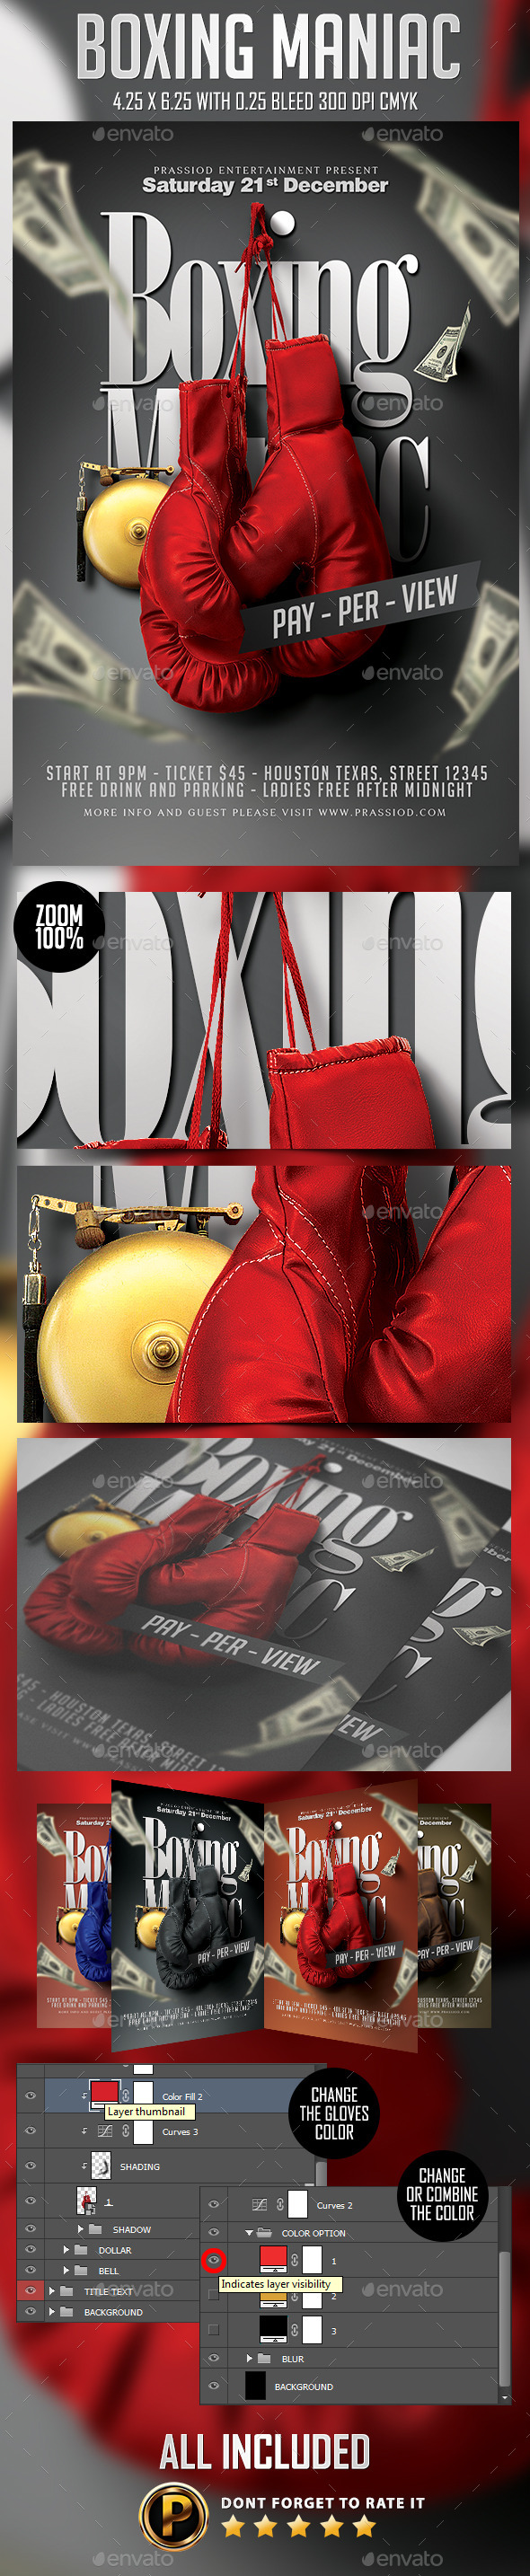 Boxing Maniac Flyer Template - Sports Events